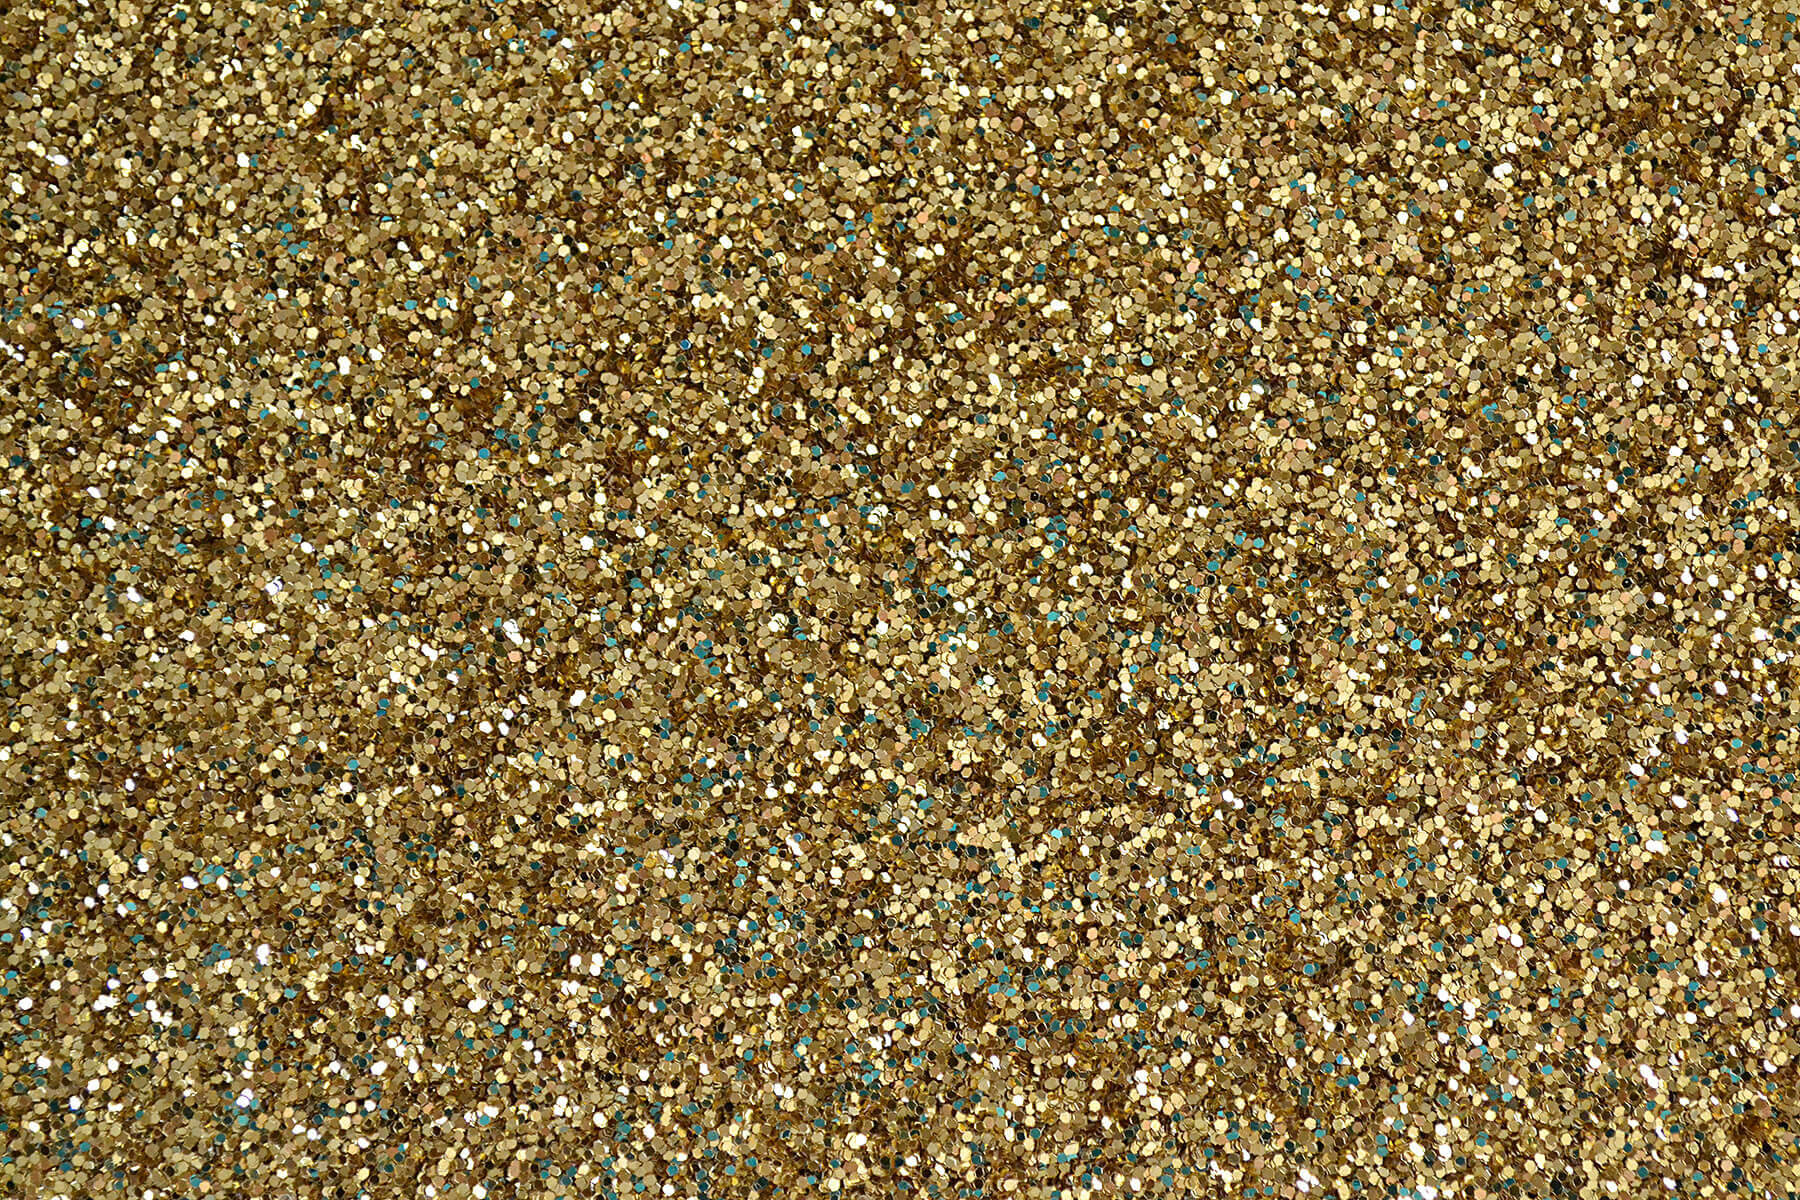 Glitter Wallpapers Gold Glitter Backgrounds Stars Backgrounds 1800x1200